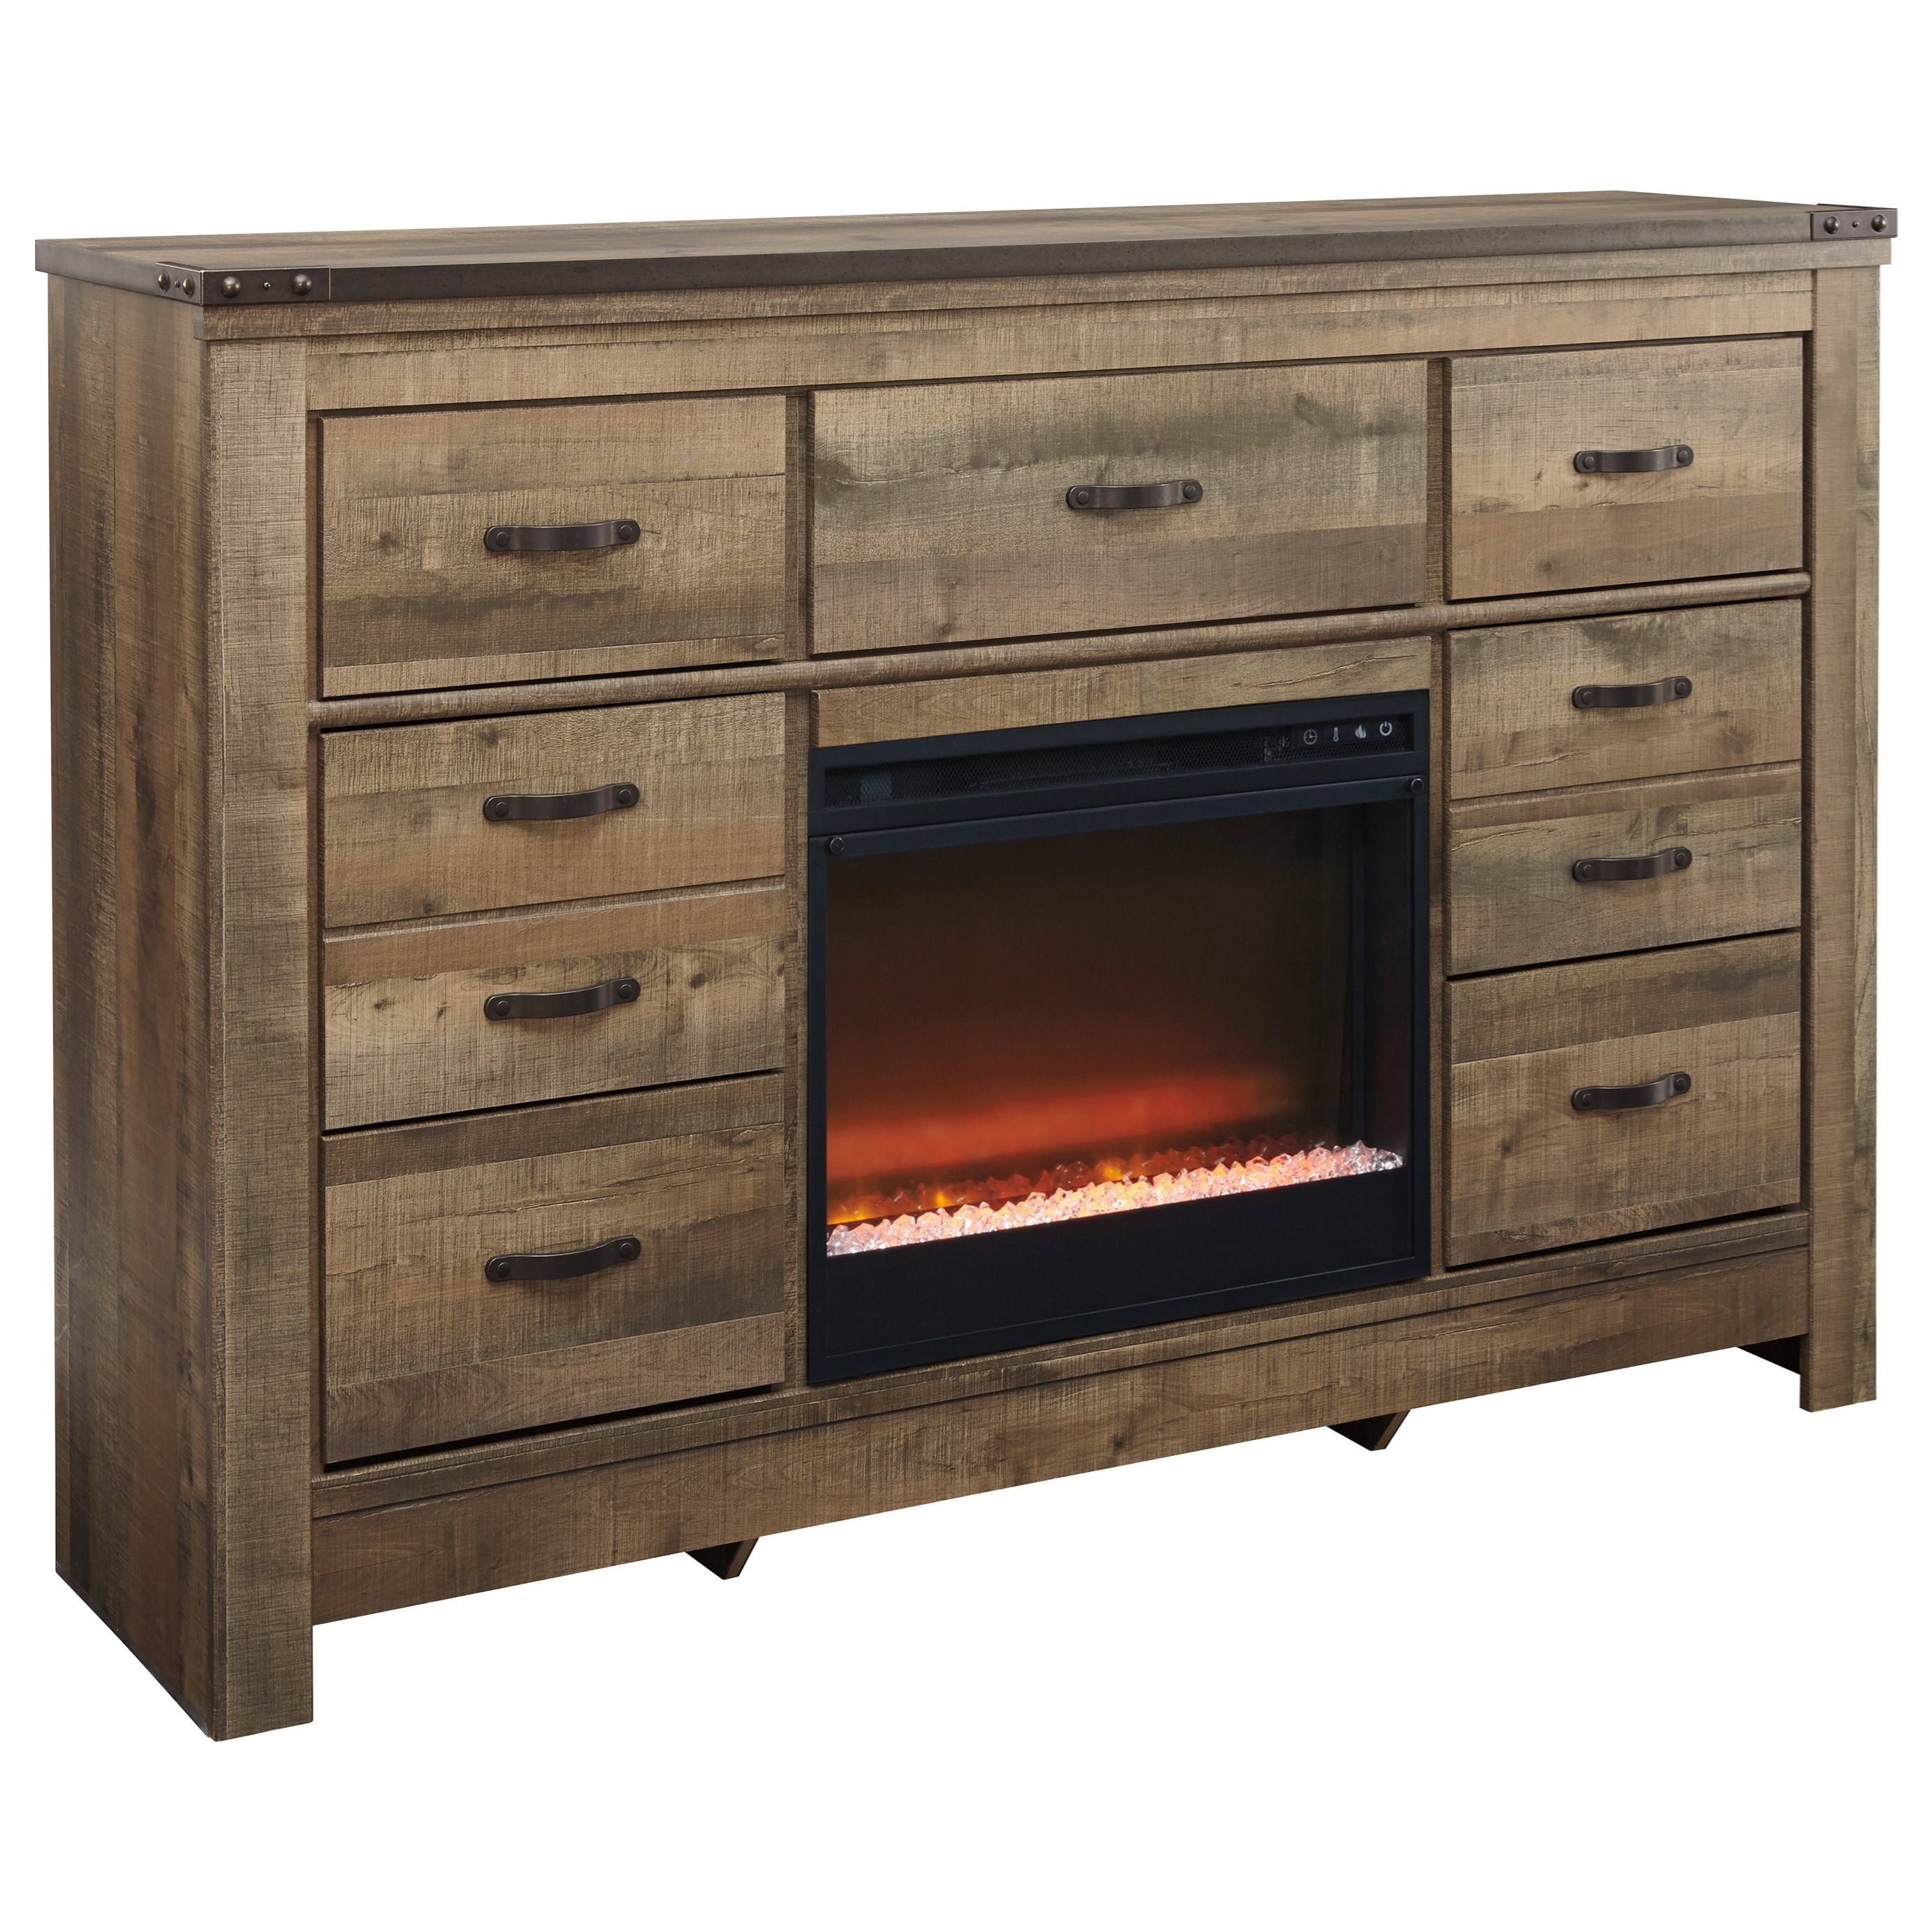 Trinell Dresser with Fireplace Insert by Signature Design by Ashley at Northeast Factory Direct